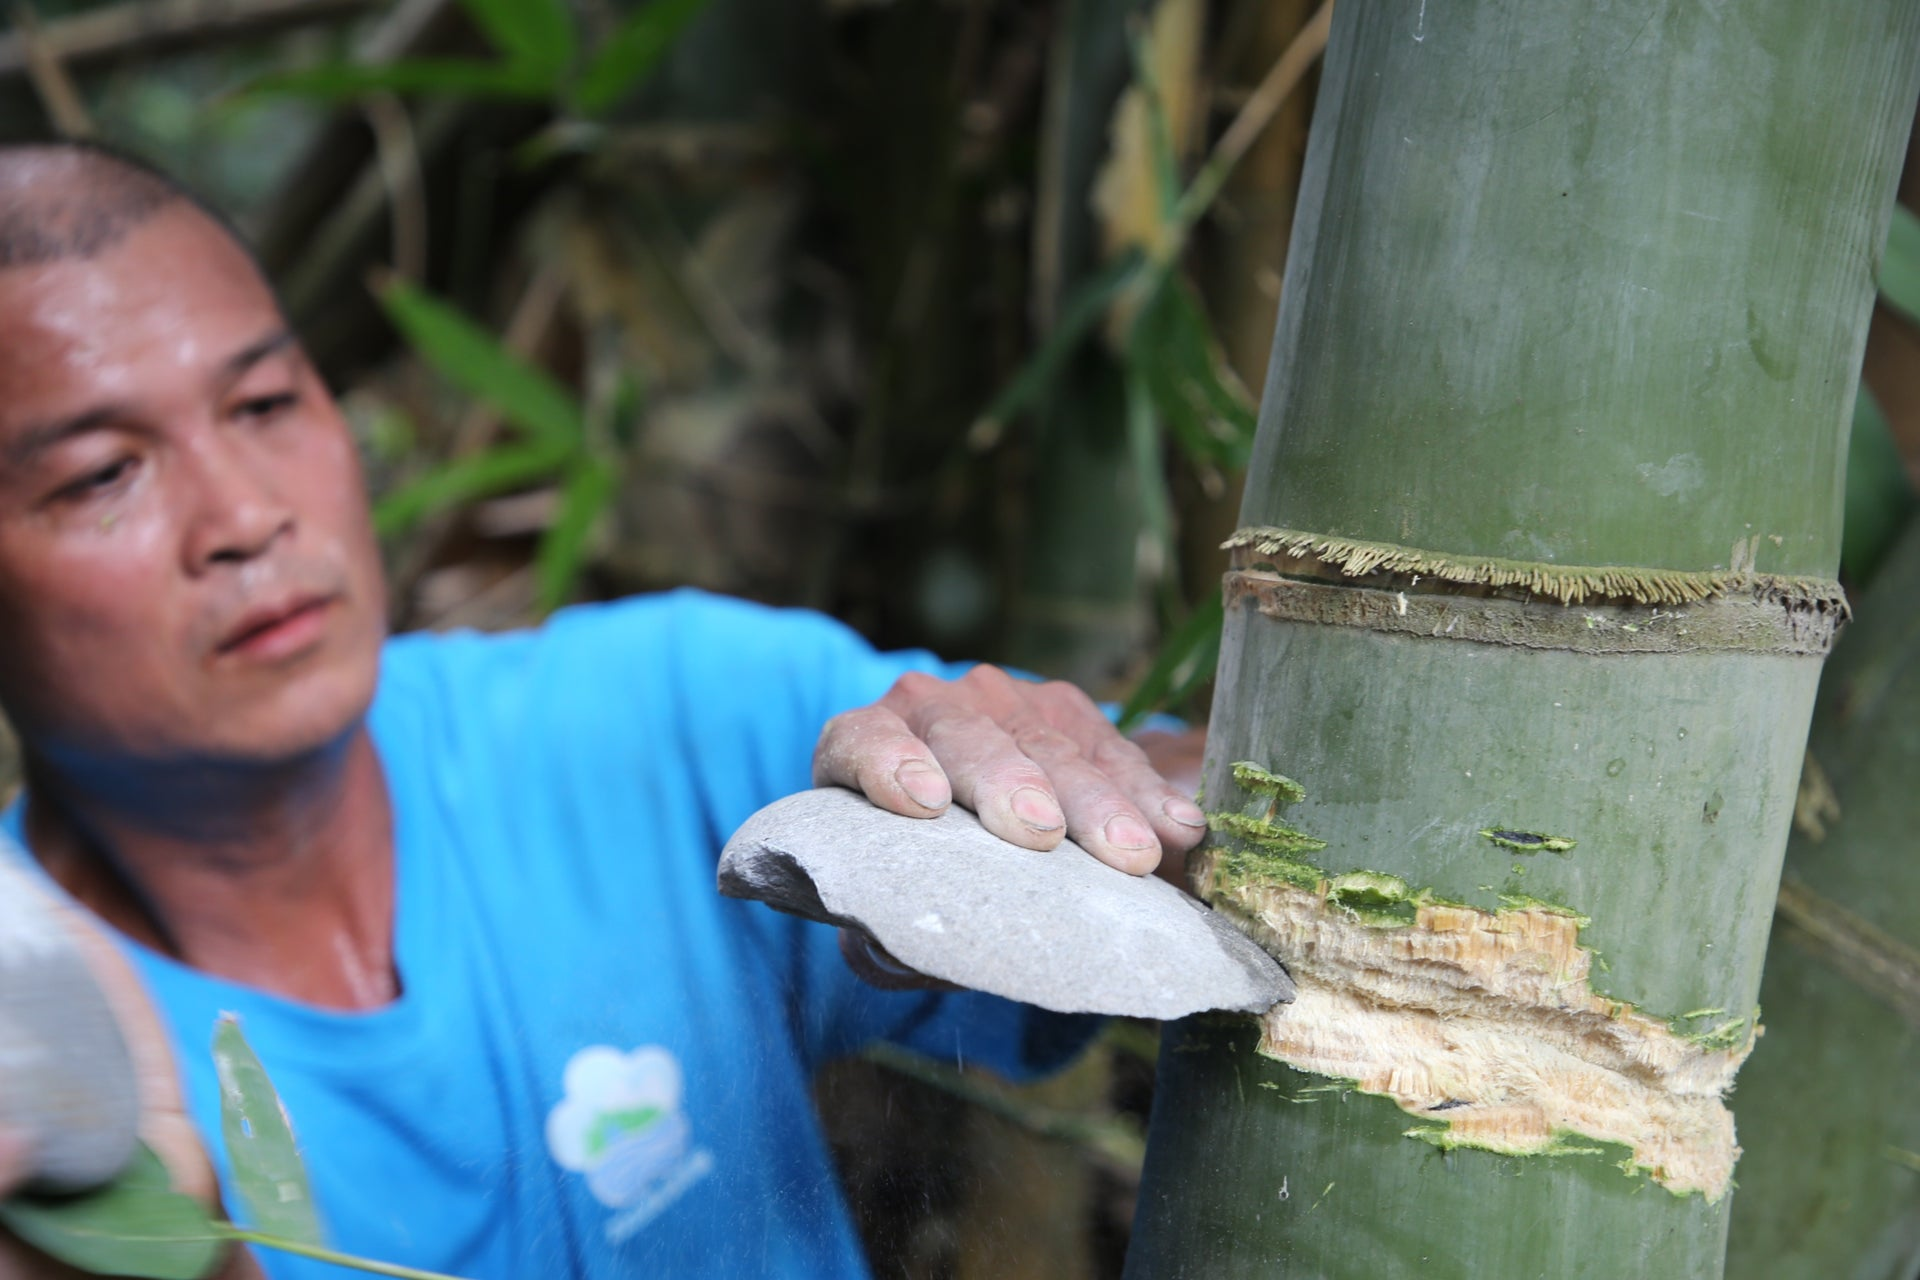 Cutting bamboo using stone tools to make rafts